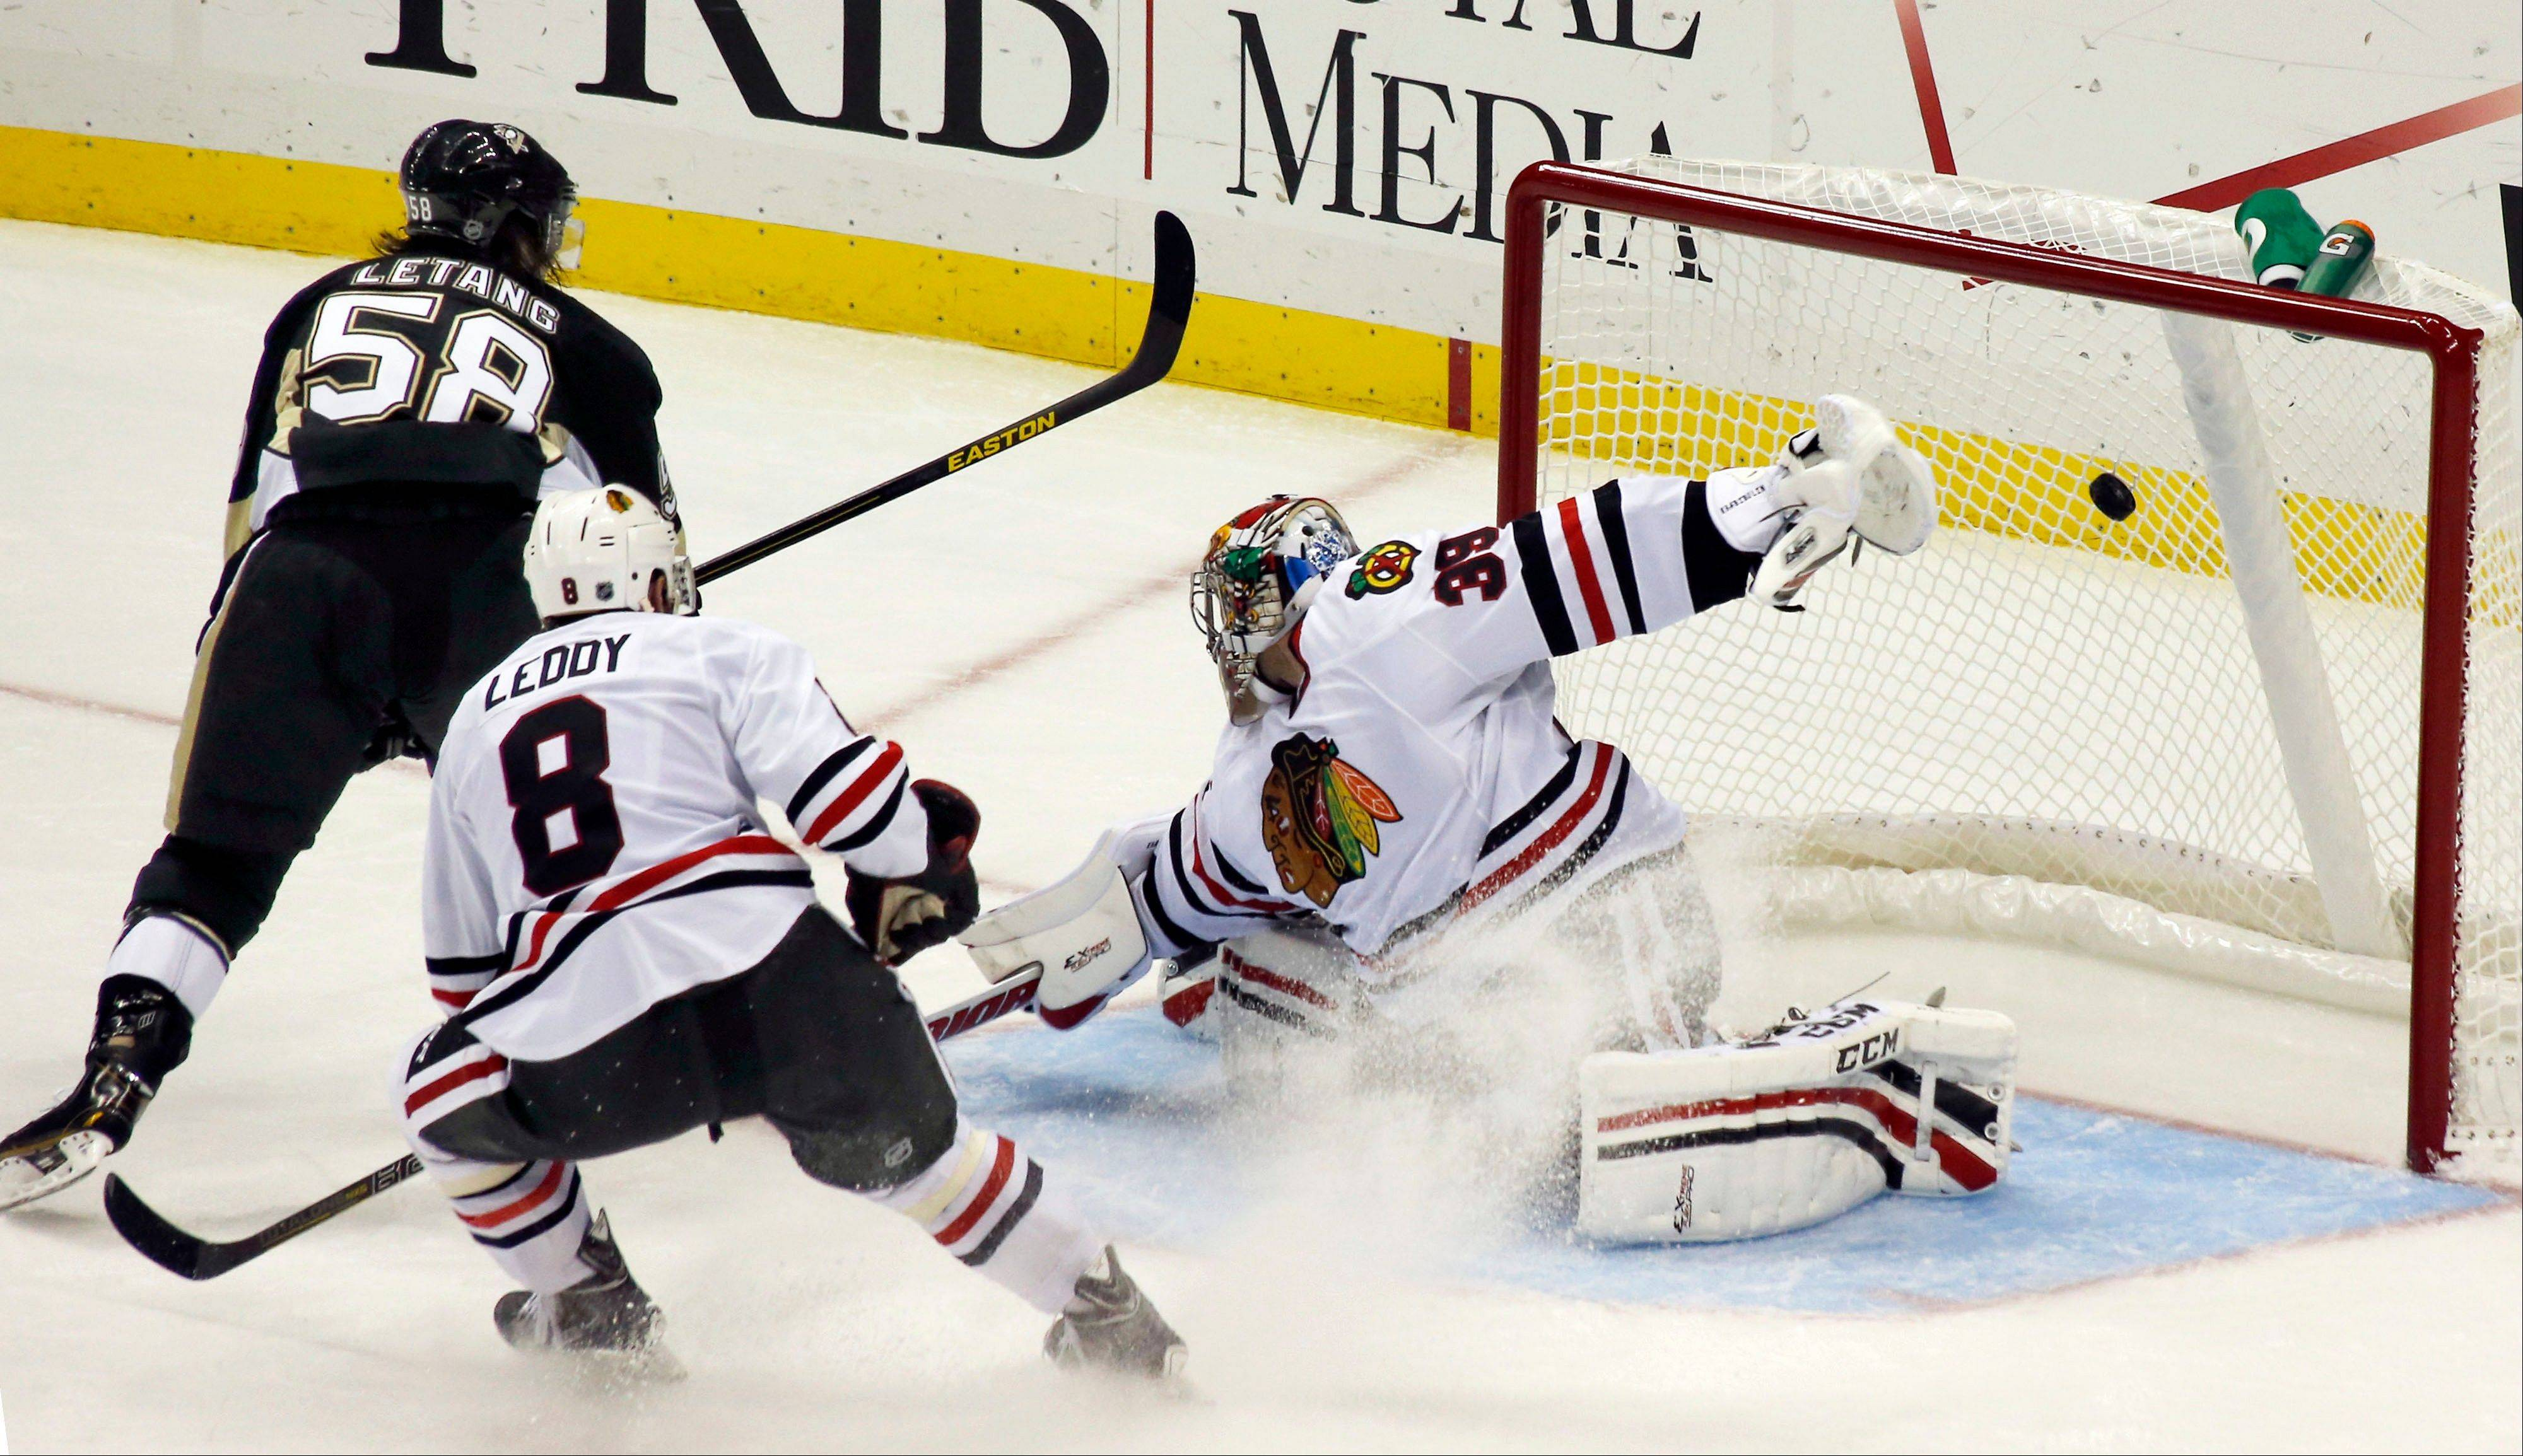 The Penguins' Kris Letang scores the first of his 2 goals on Blackhawks goalie Nikolai Khabibulin in the third period Monday night.